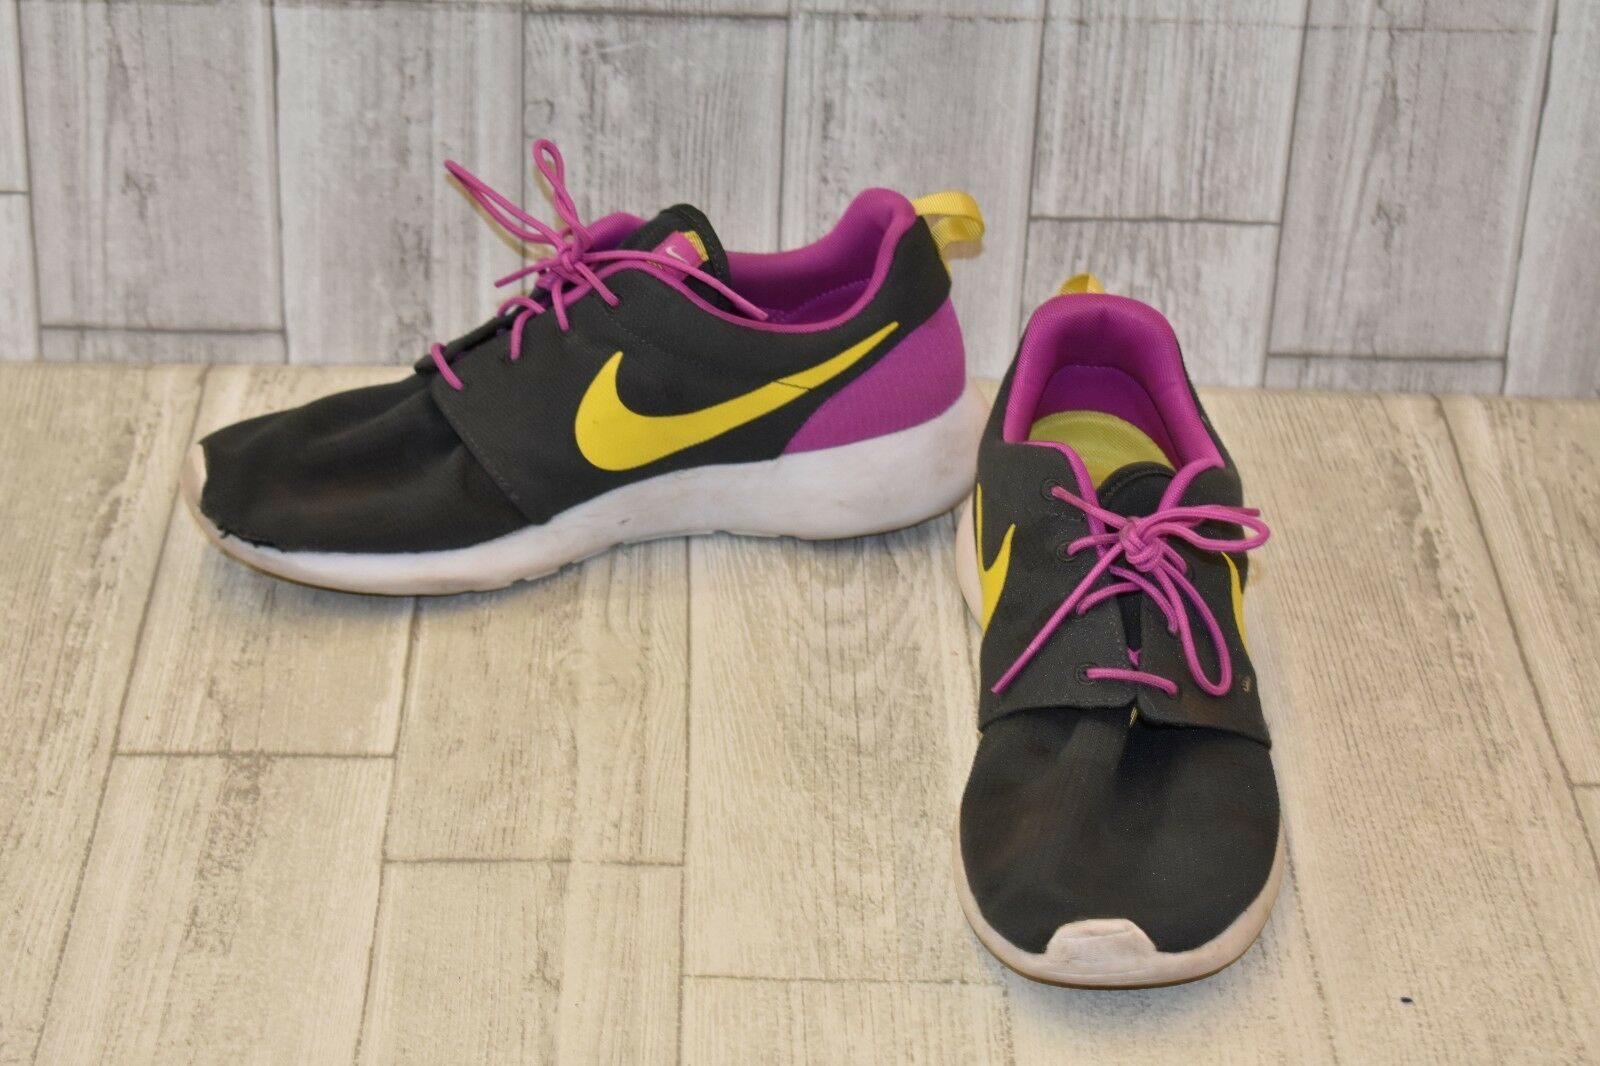 015f4691a66   Nike Roshe One Running Shoe - Men s Men s Men s Size 12.5 - Gray Purple  Yellow DAMAGED 2e0cc0